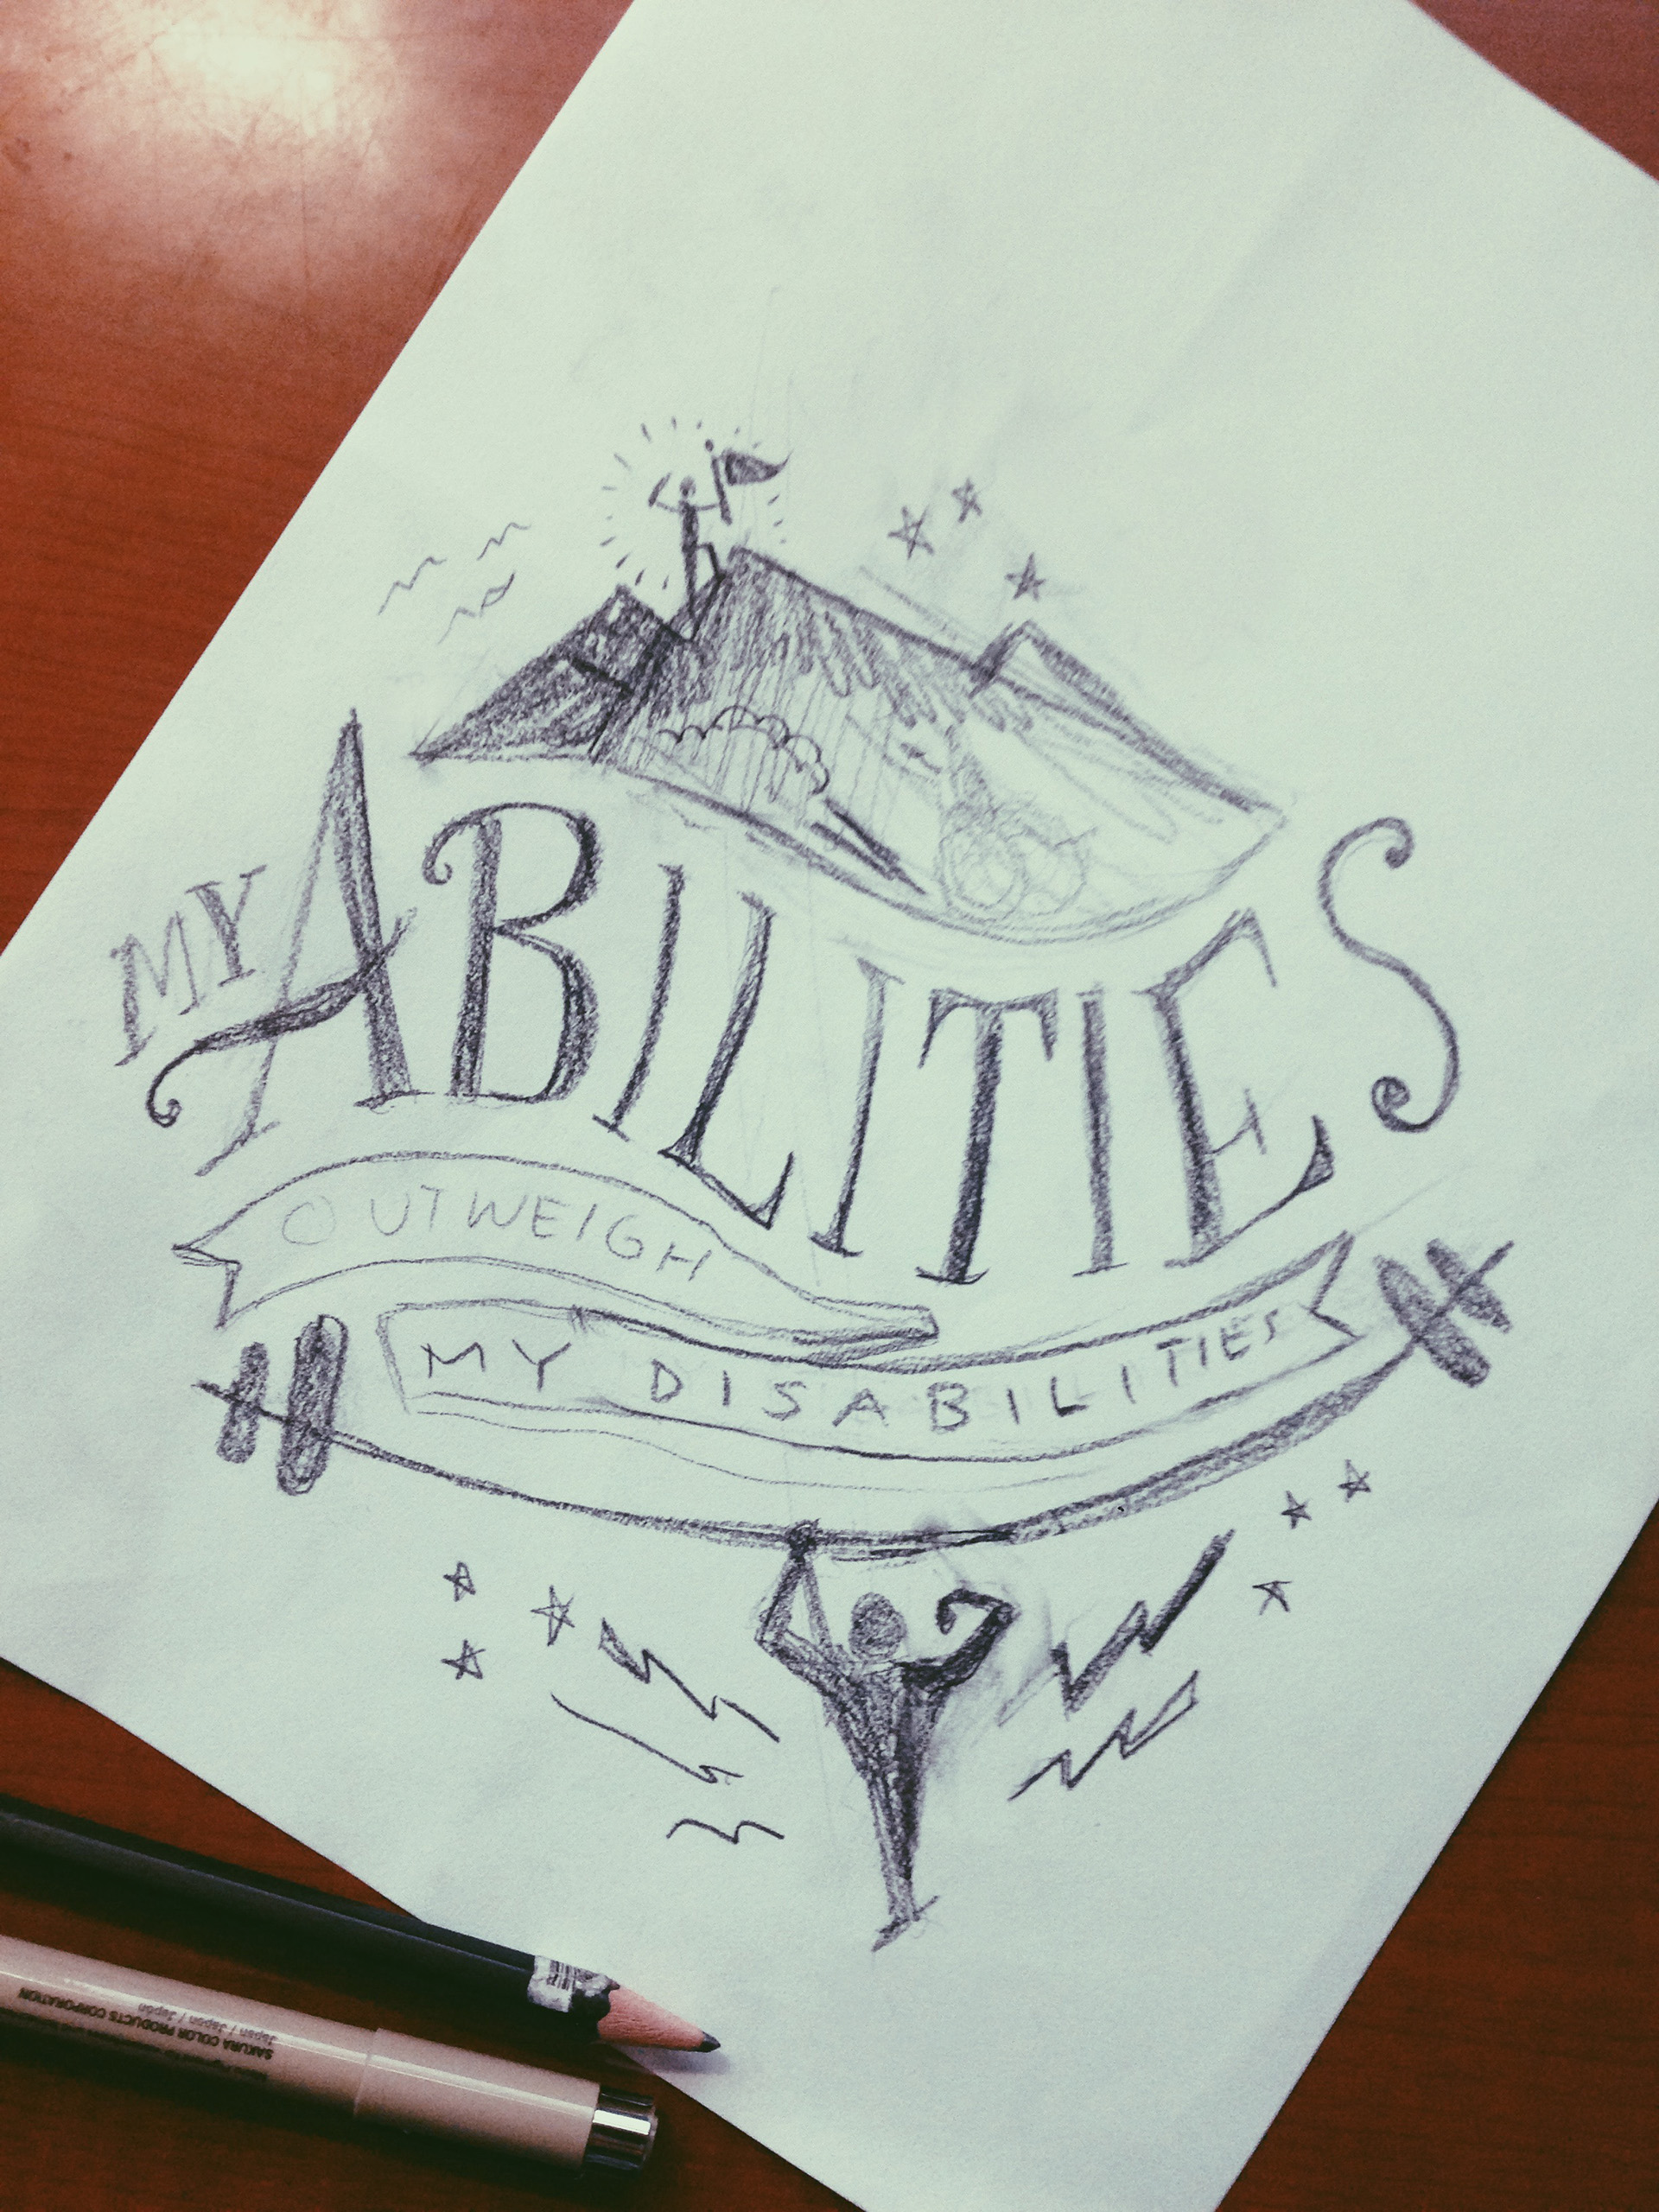 My Abilities Outweigh My Disabilities on Behance.